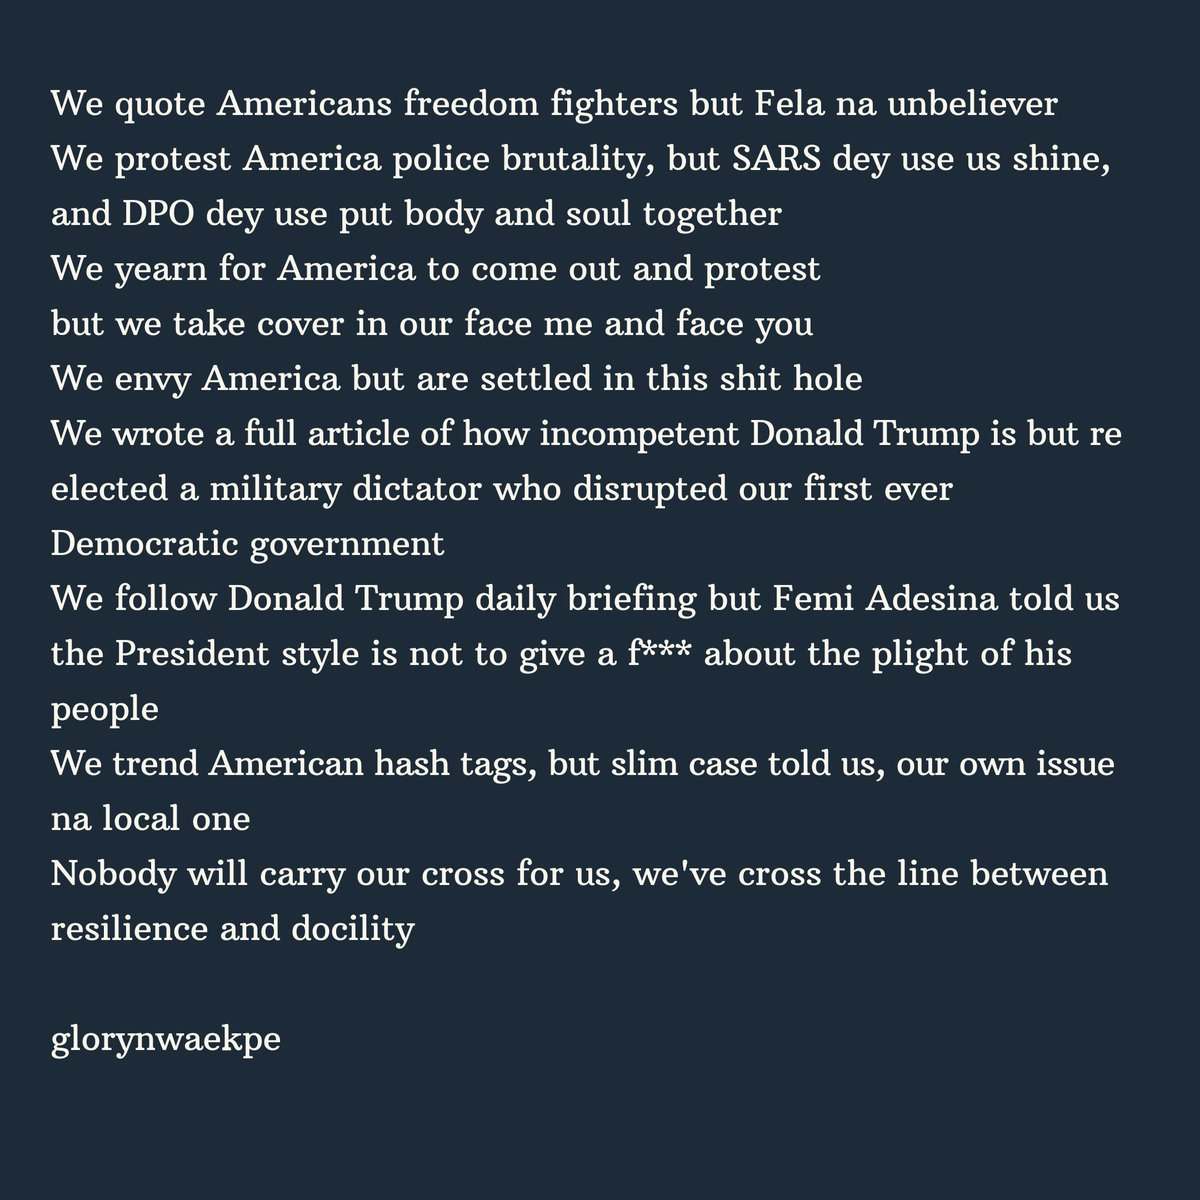 We quote Americans freedom fighters but Fela na unbeliever  We protest America police brutality but SARS dey use us shine and DPO dey use us put body and soul together  We envy America but are settled in this shit hole  #WeAreTired Nigeria #JusticeForUwa #JusticeForTina #EndSARSpic.twitter.com/v25grt7aik